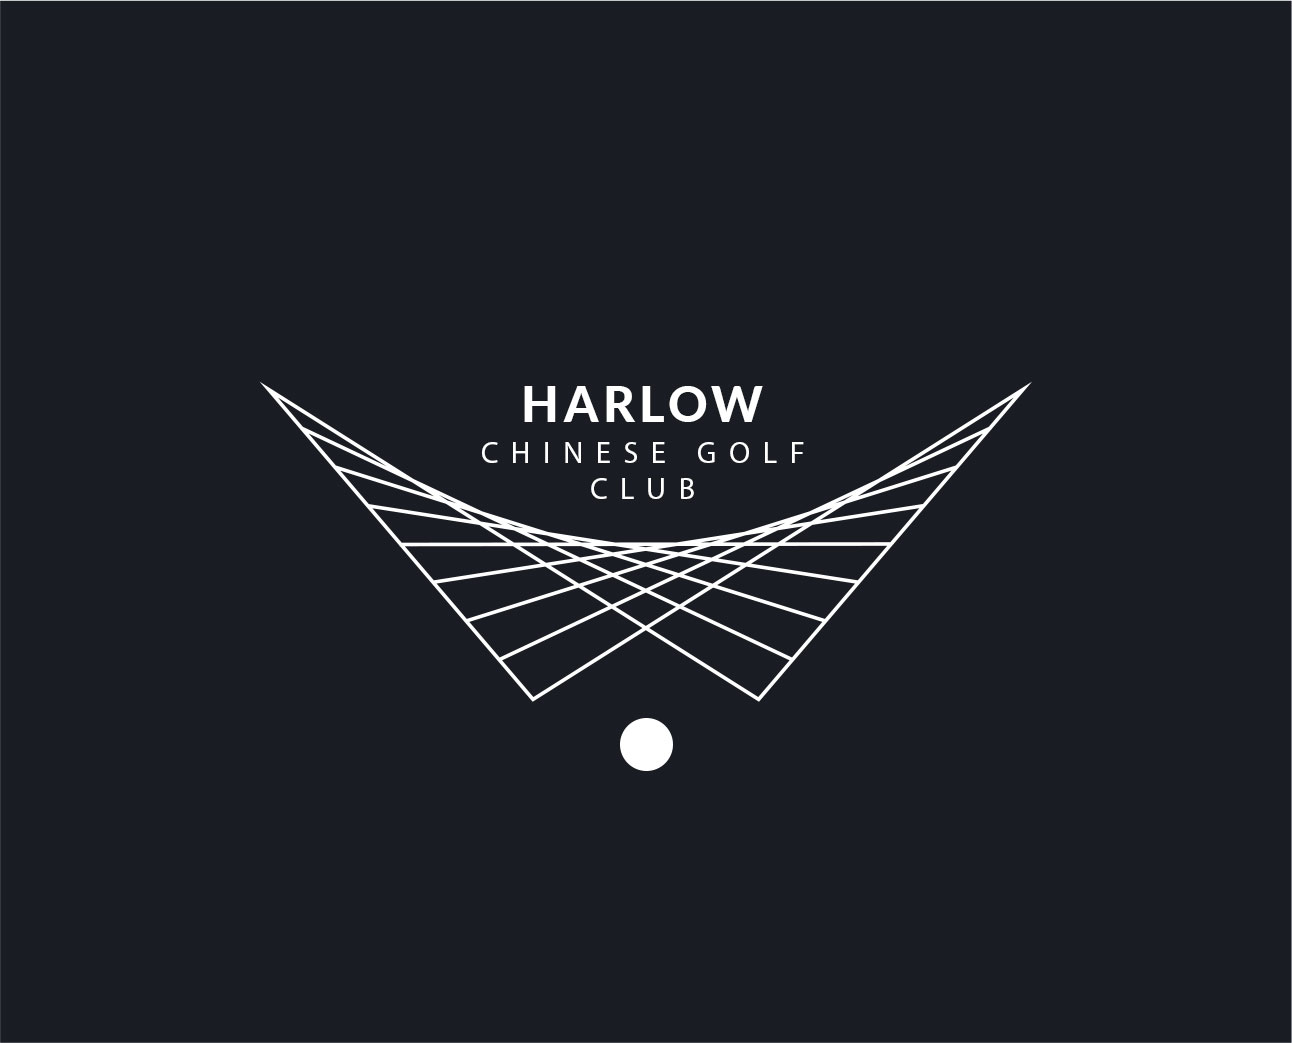 Harlow_ChineseGolf_Template_63 (1)